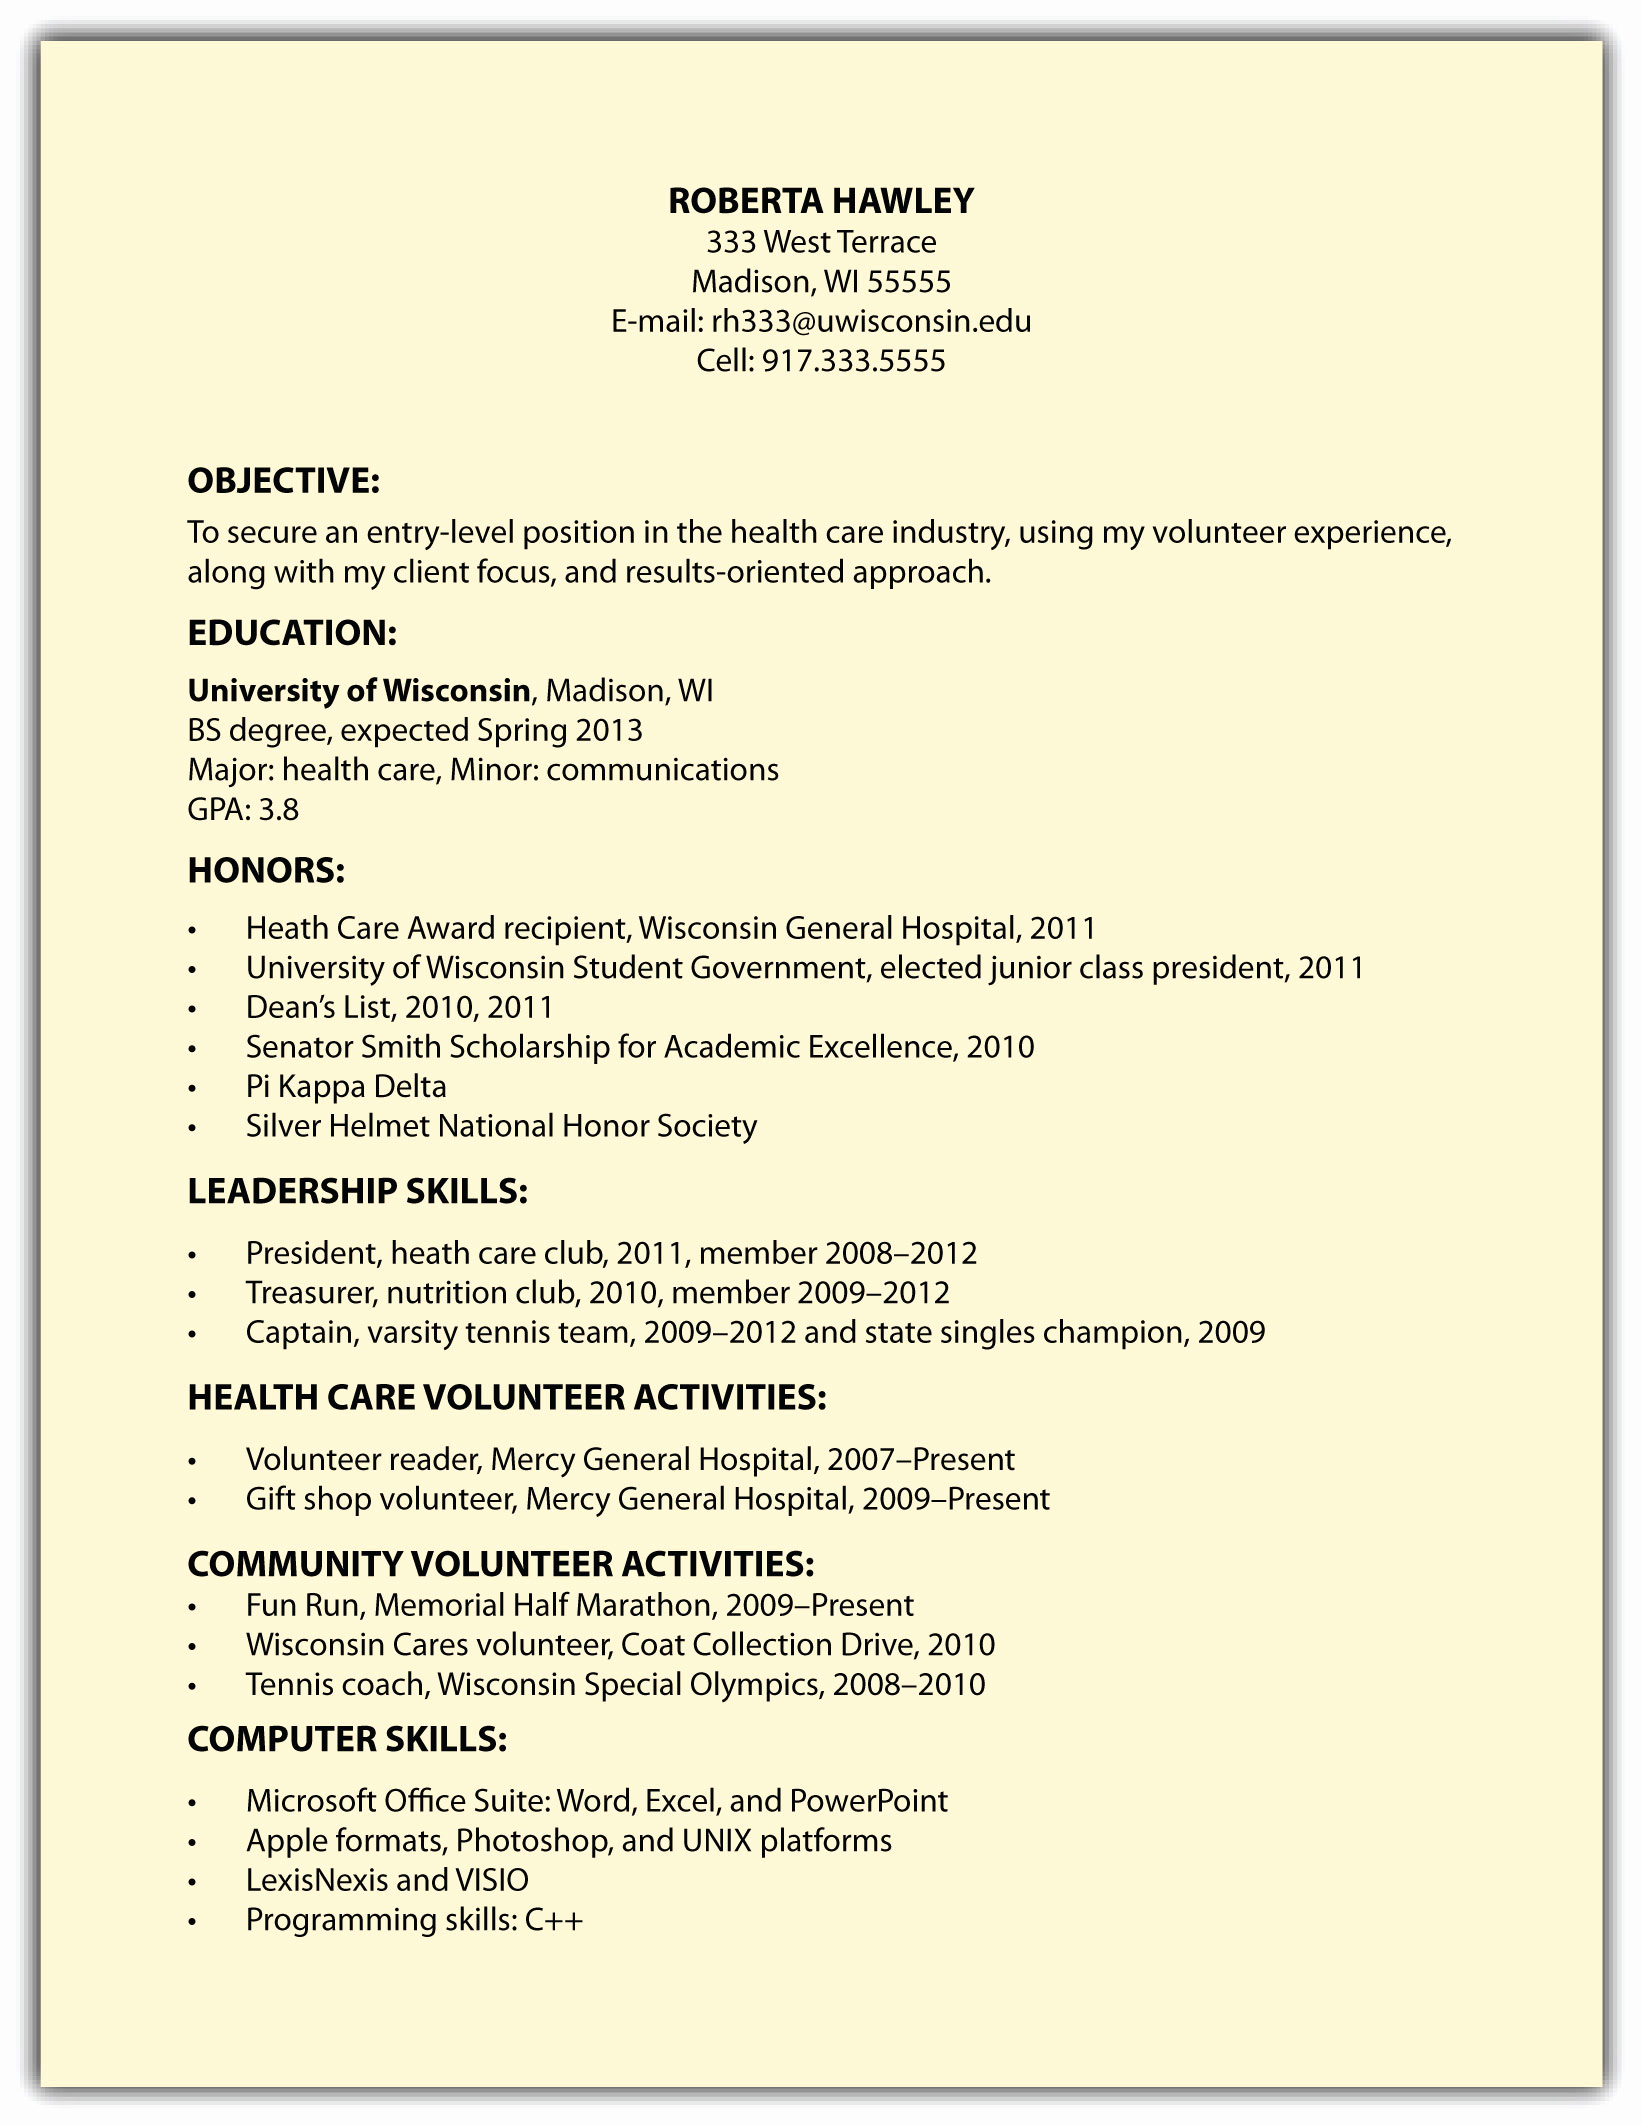 s08 06 other resume formats including